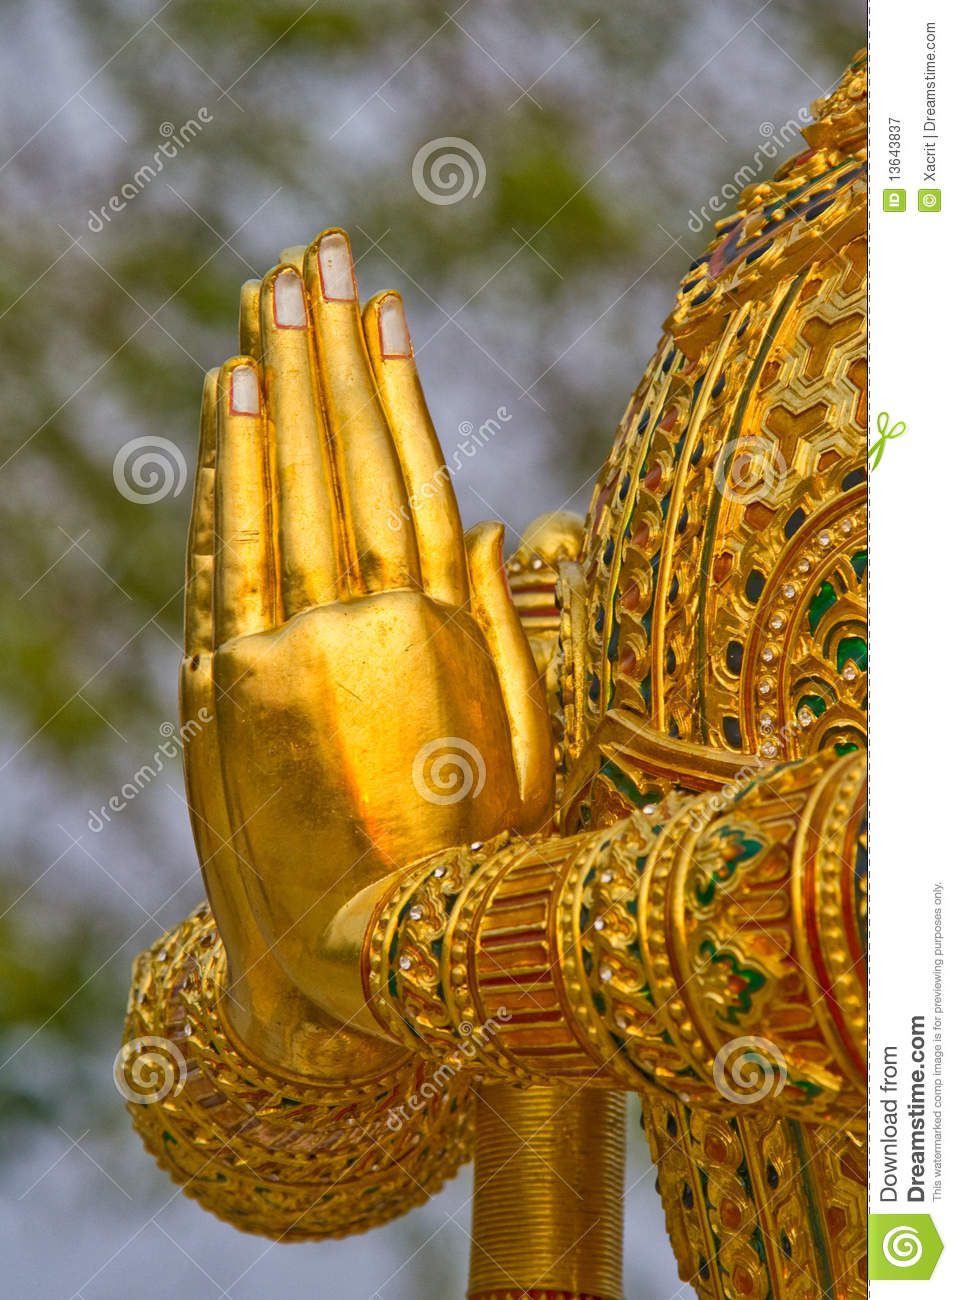 Royalty Free Stock Photography Praying Hands Guardian Angel Image13643837 on audio heaven